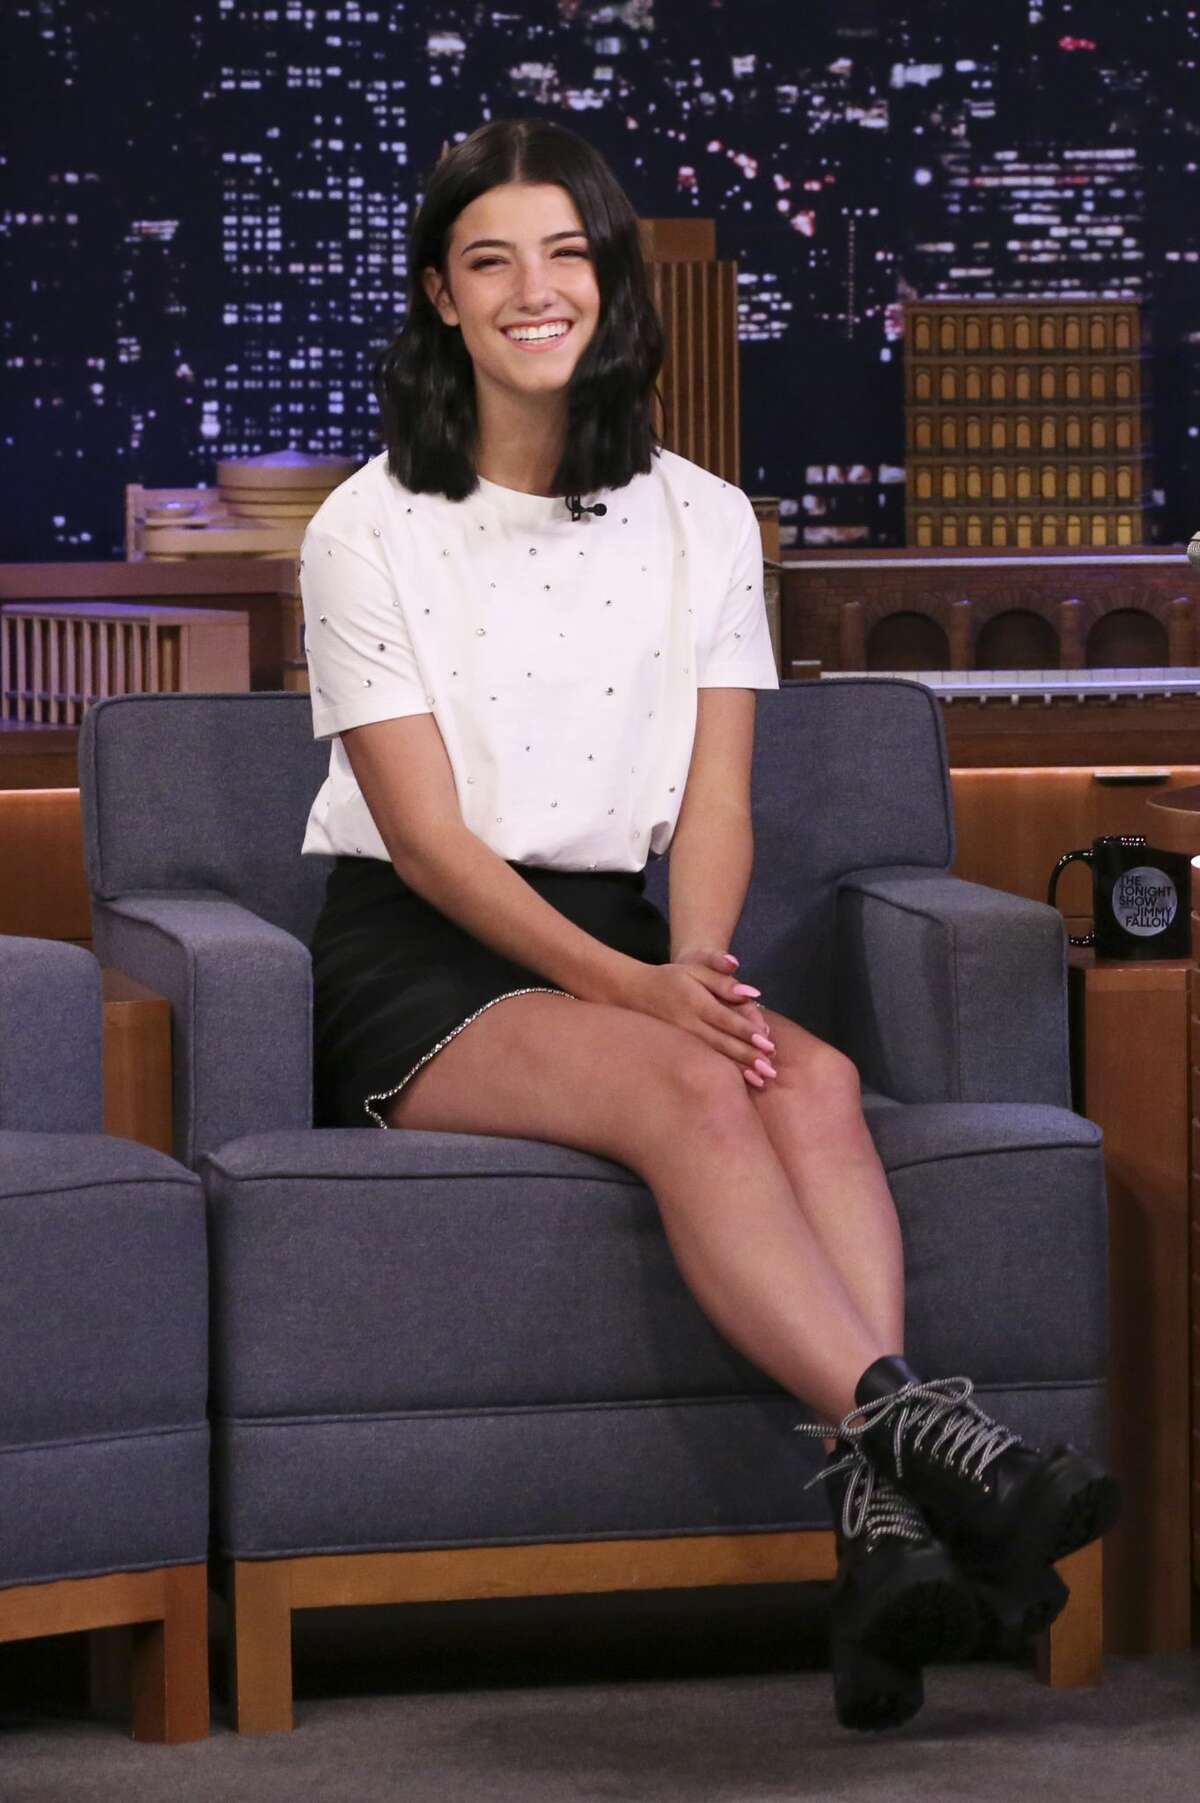 Dancer Charli D'Amelio during an interview with Jimmy Fallon on March 10, 2020.